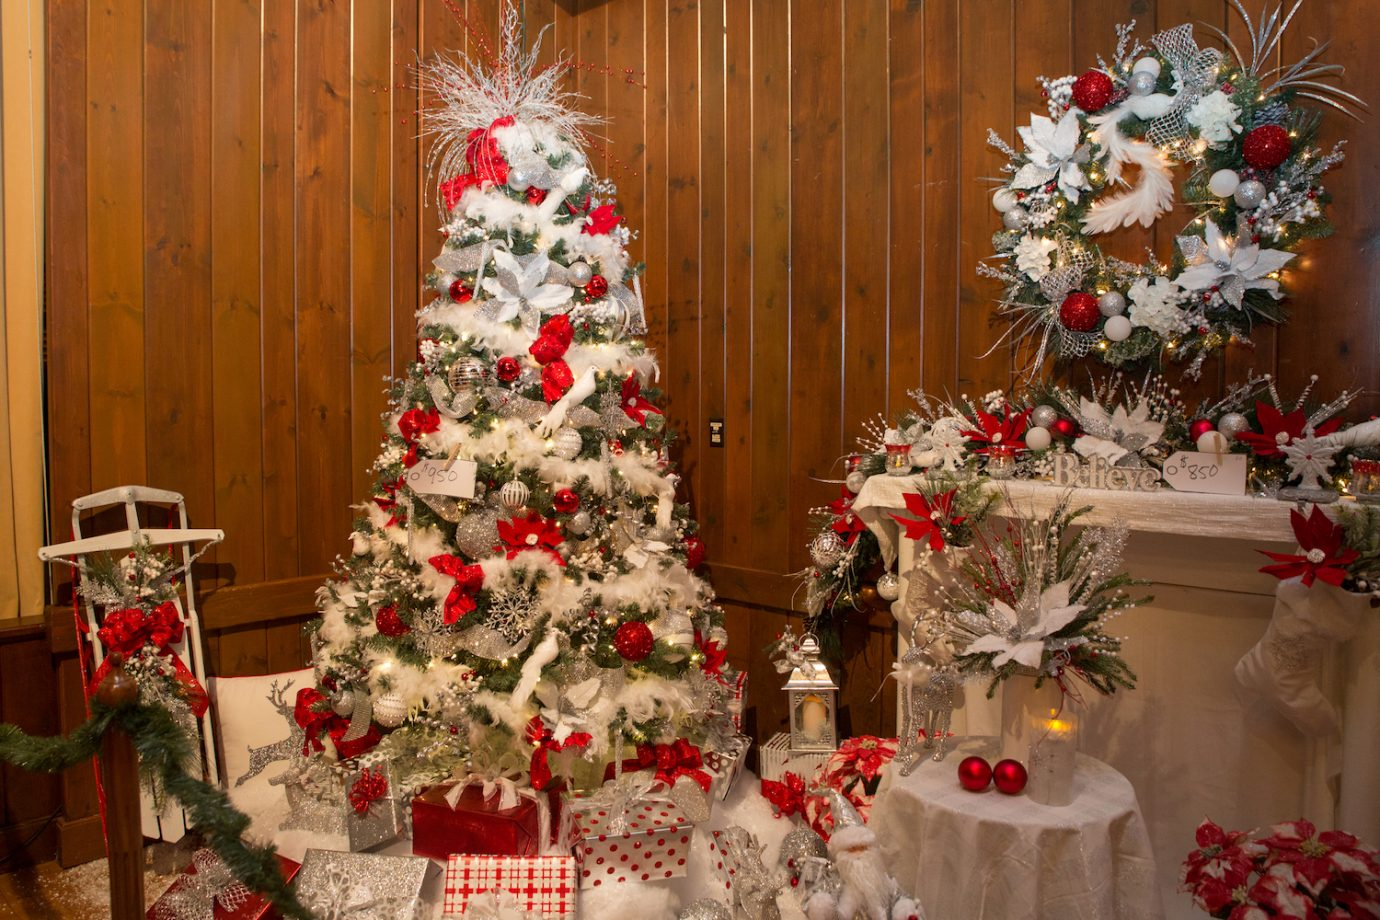 Festival of Trees Returns Nov. 10-18